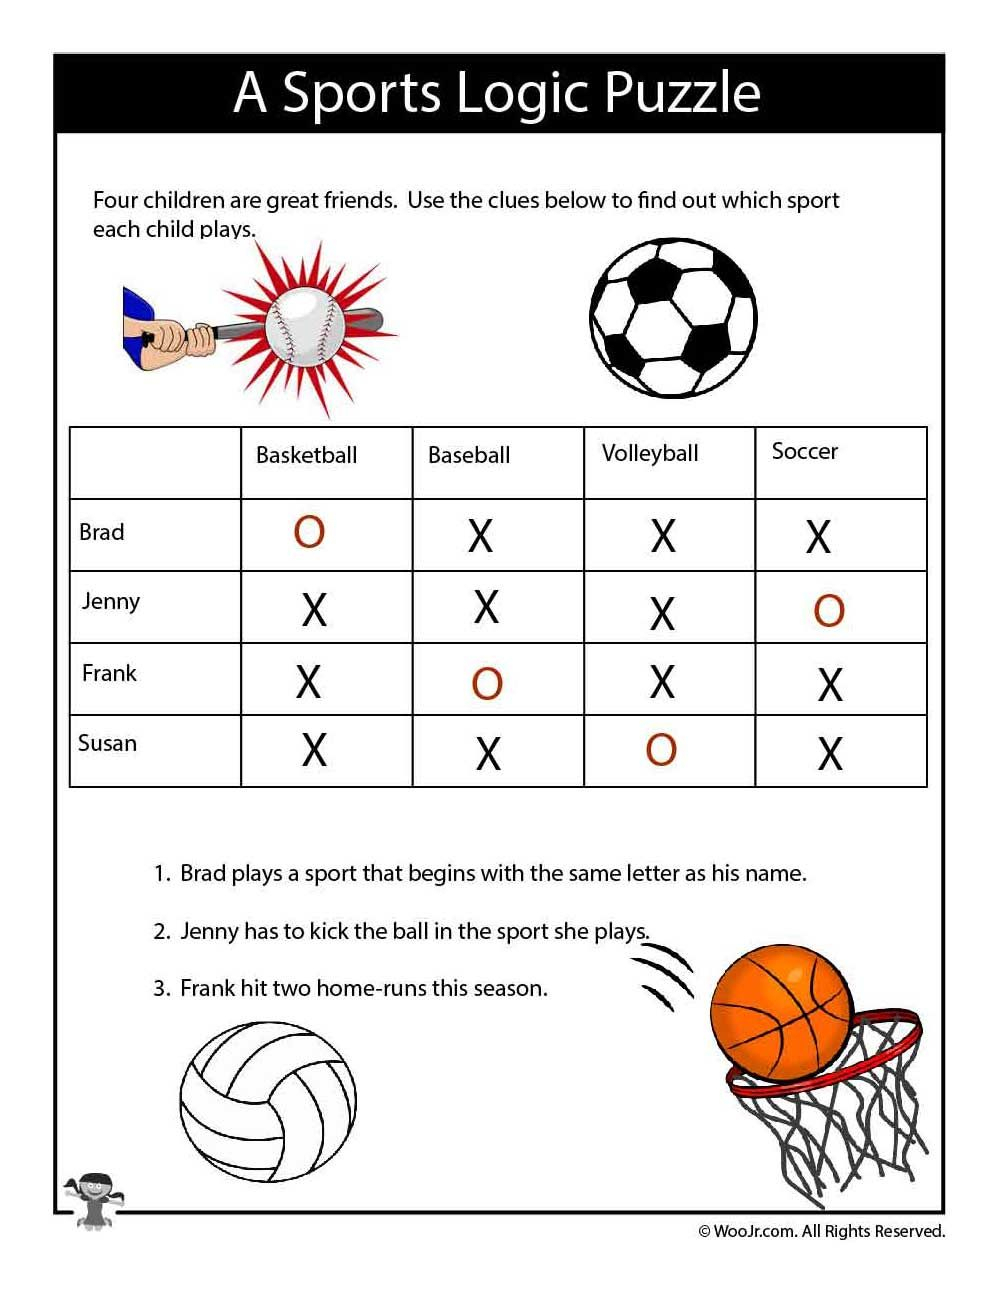 Easy Sports Logic Puzzle - Answers | Logic Puzzles, Puzzles for Letter Logic Worksheets Answers